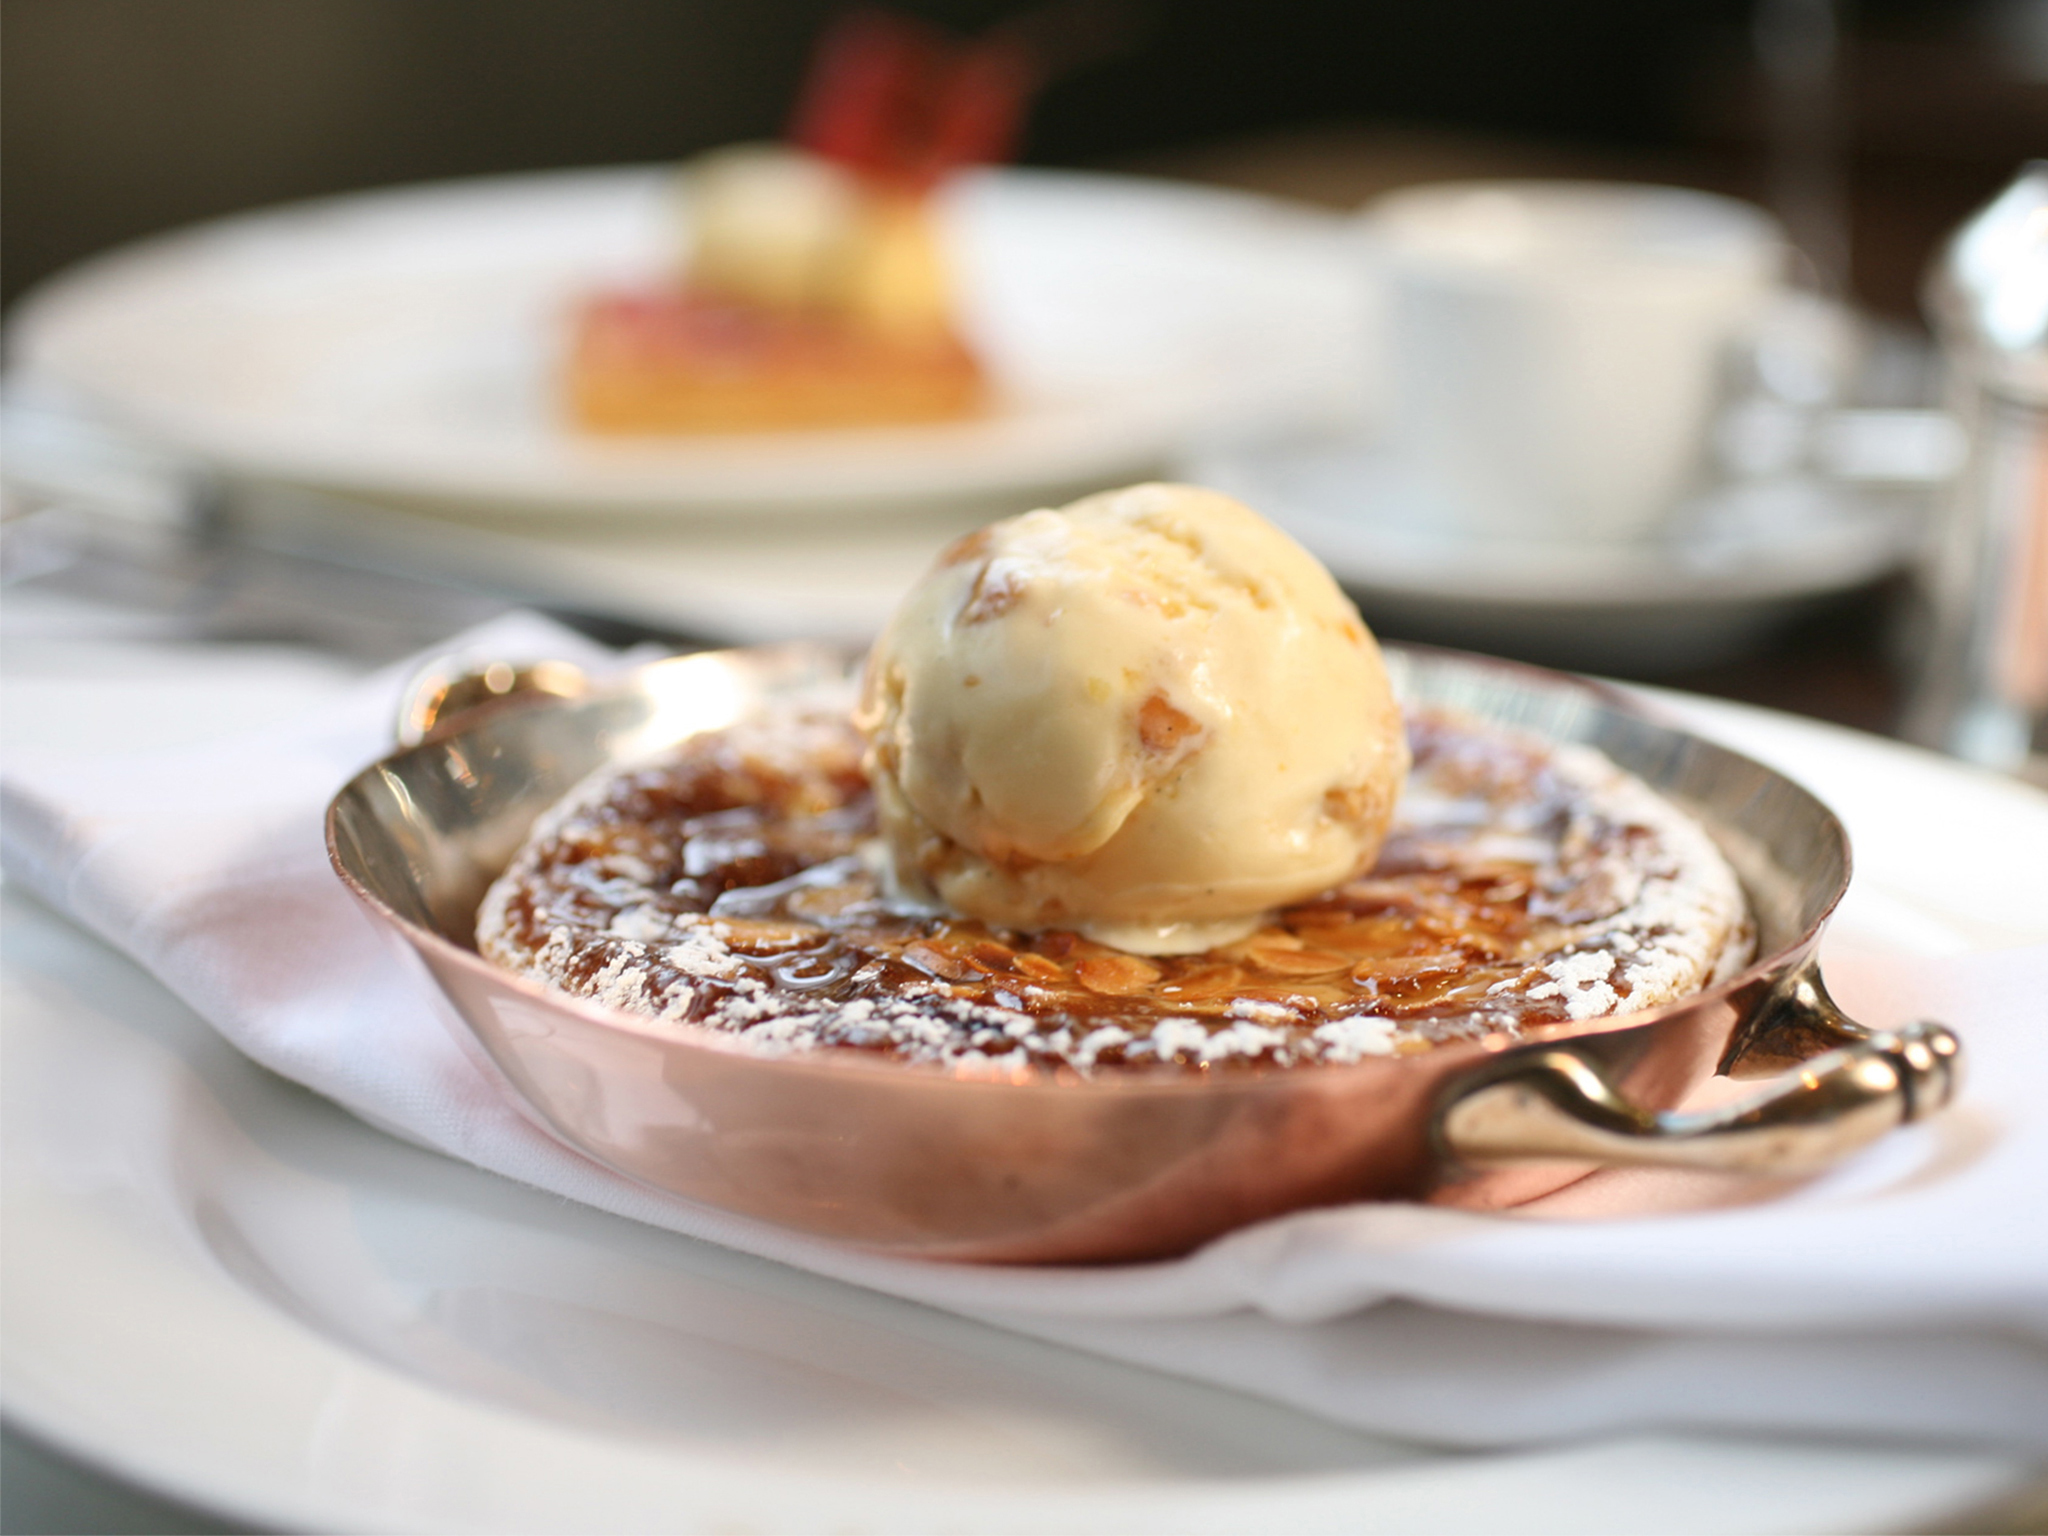 London's most comforting puddings, scott's, bakewell tart